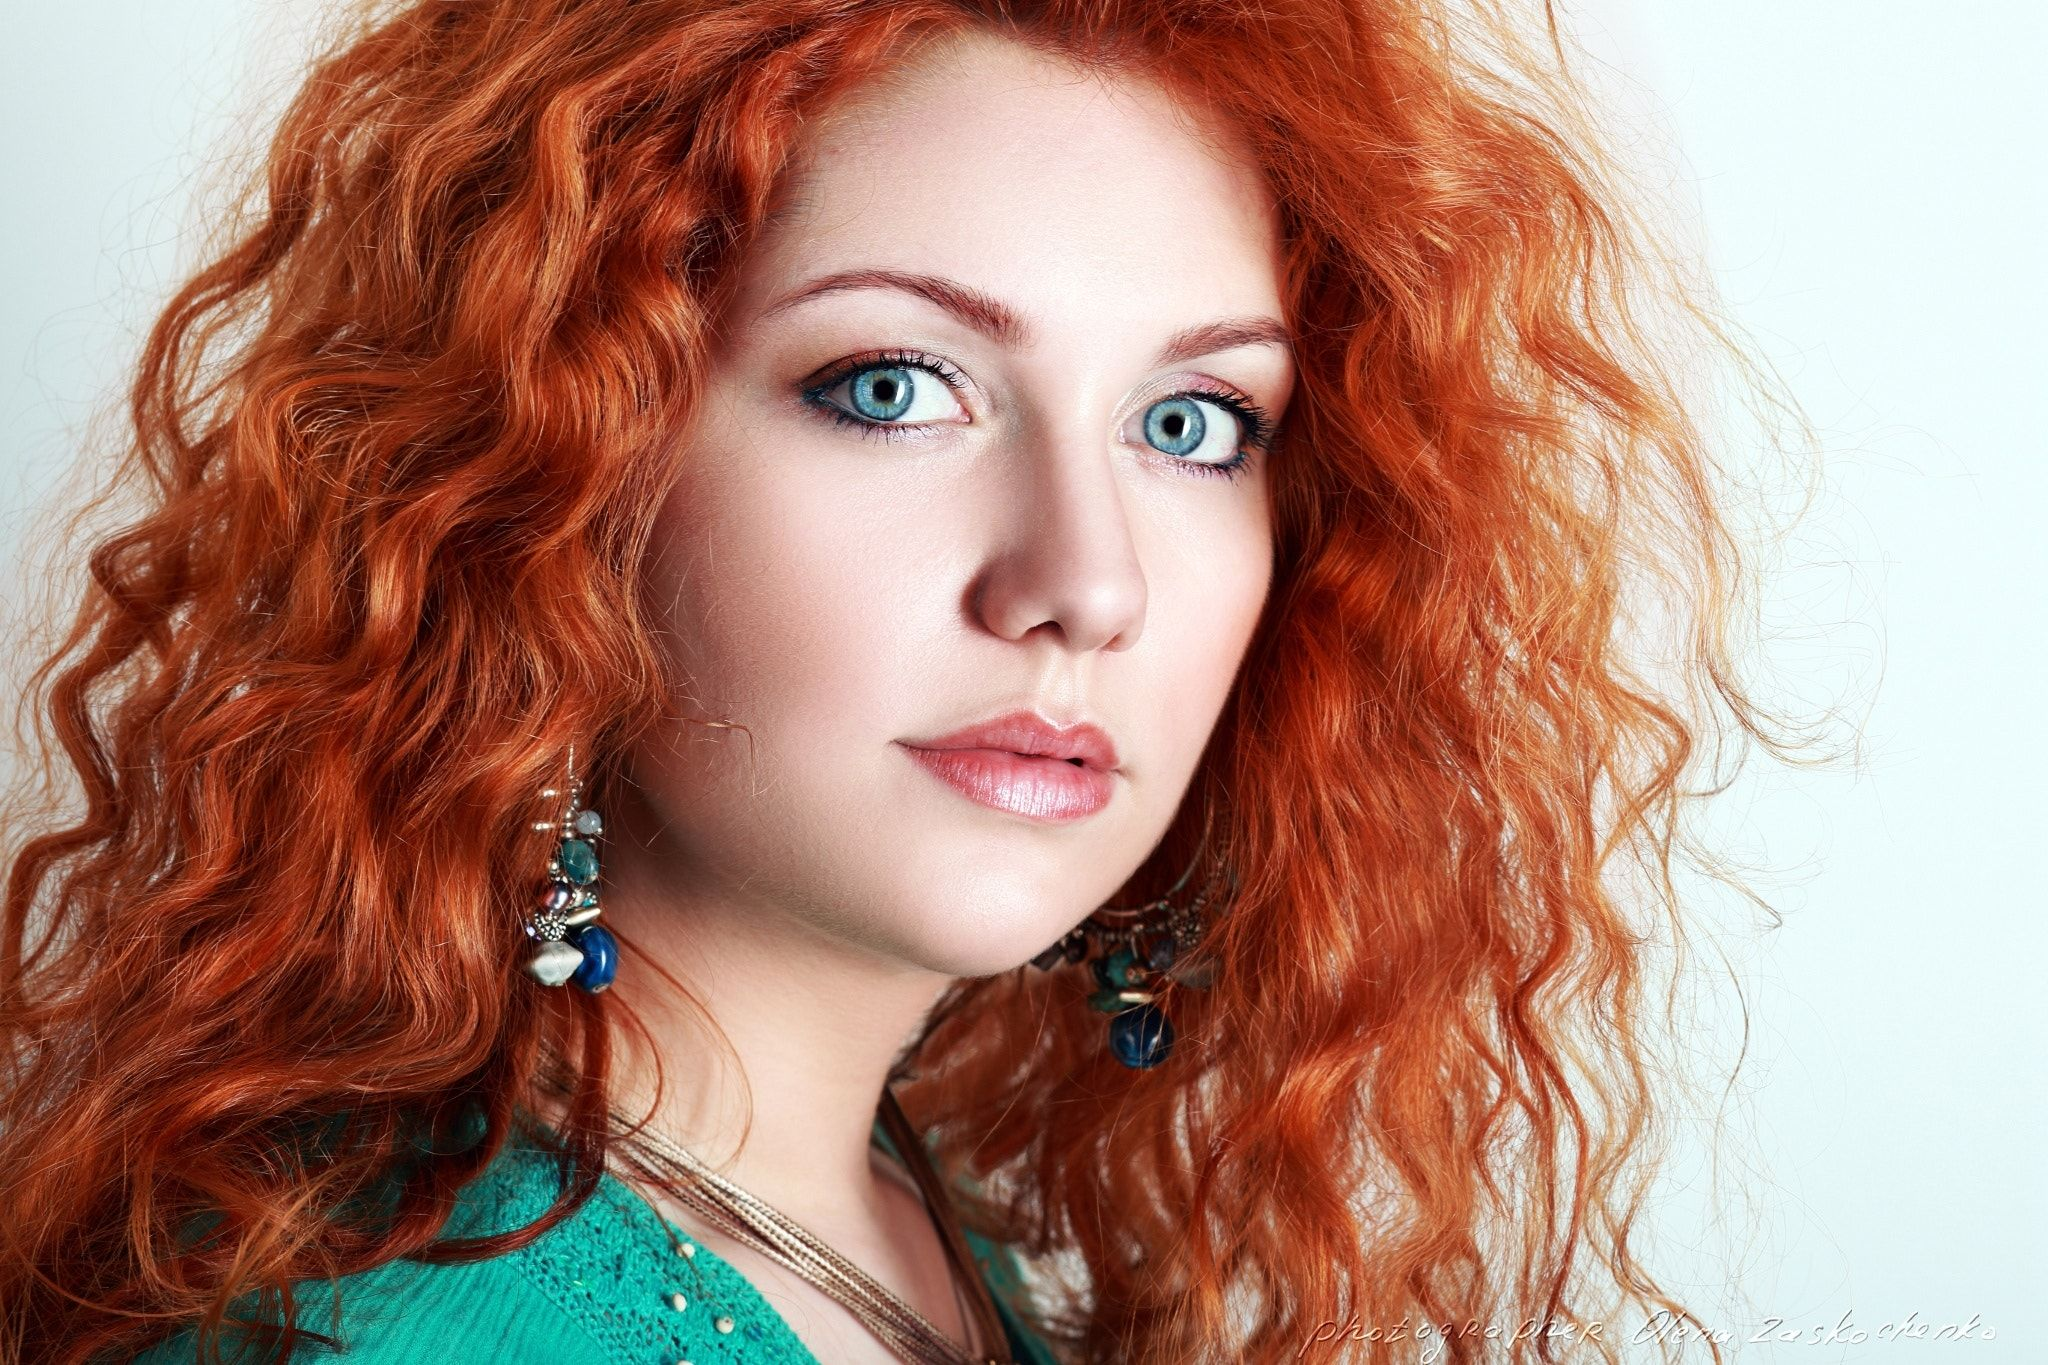 Backgrounds women with red hair and blue eyes of pc hd pics young woman portrait a eyes